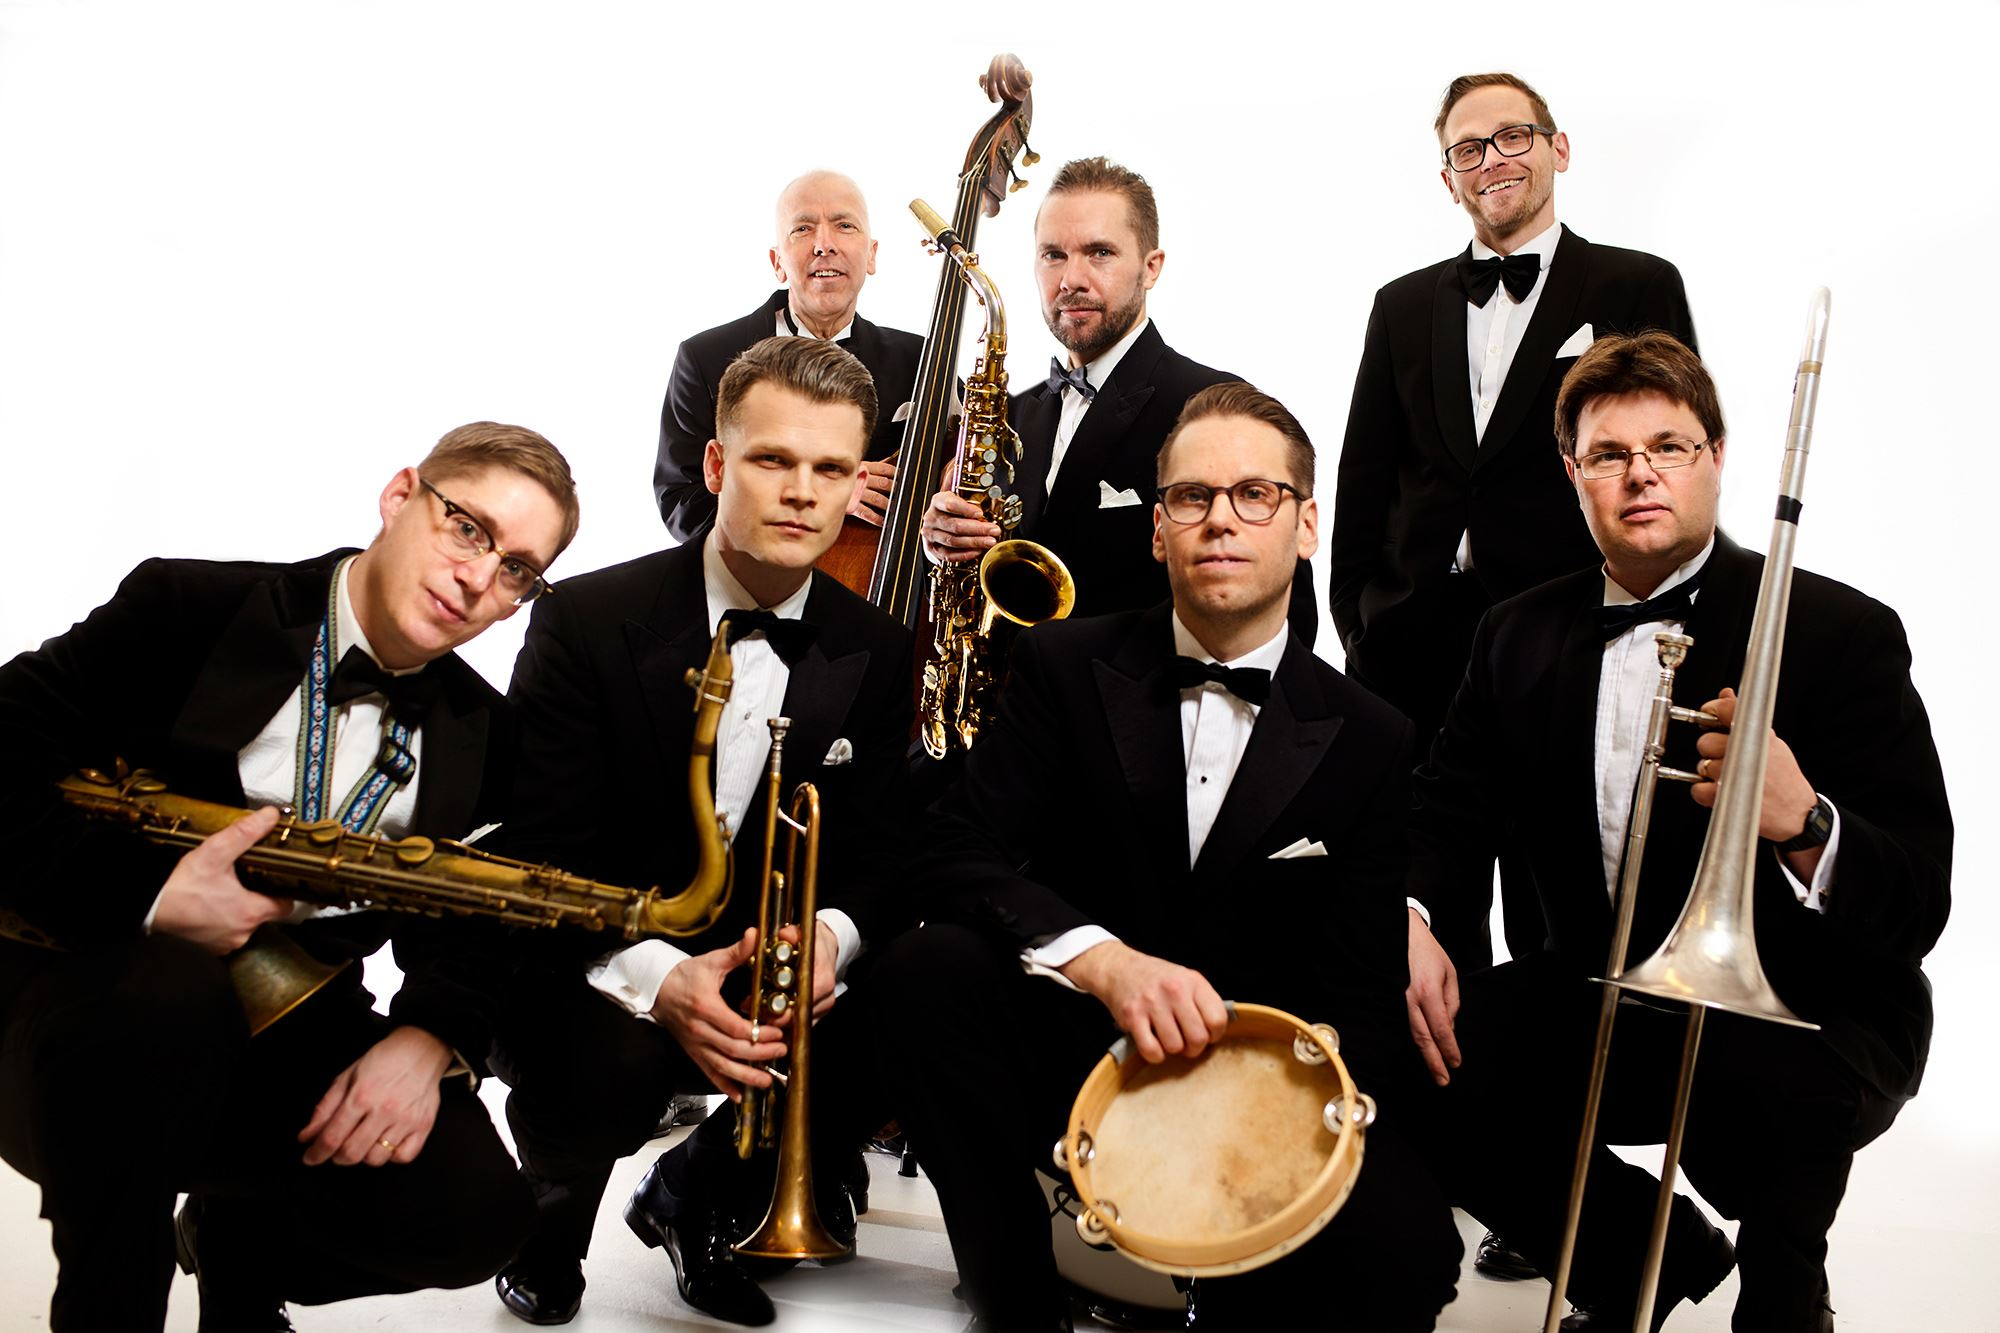 The Stockholm Swing All Stars